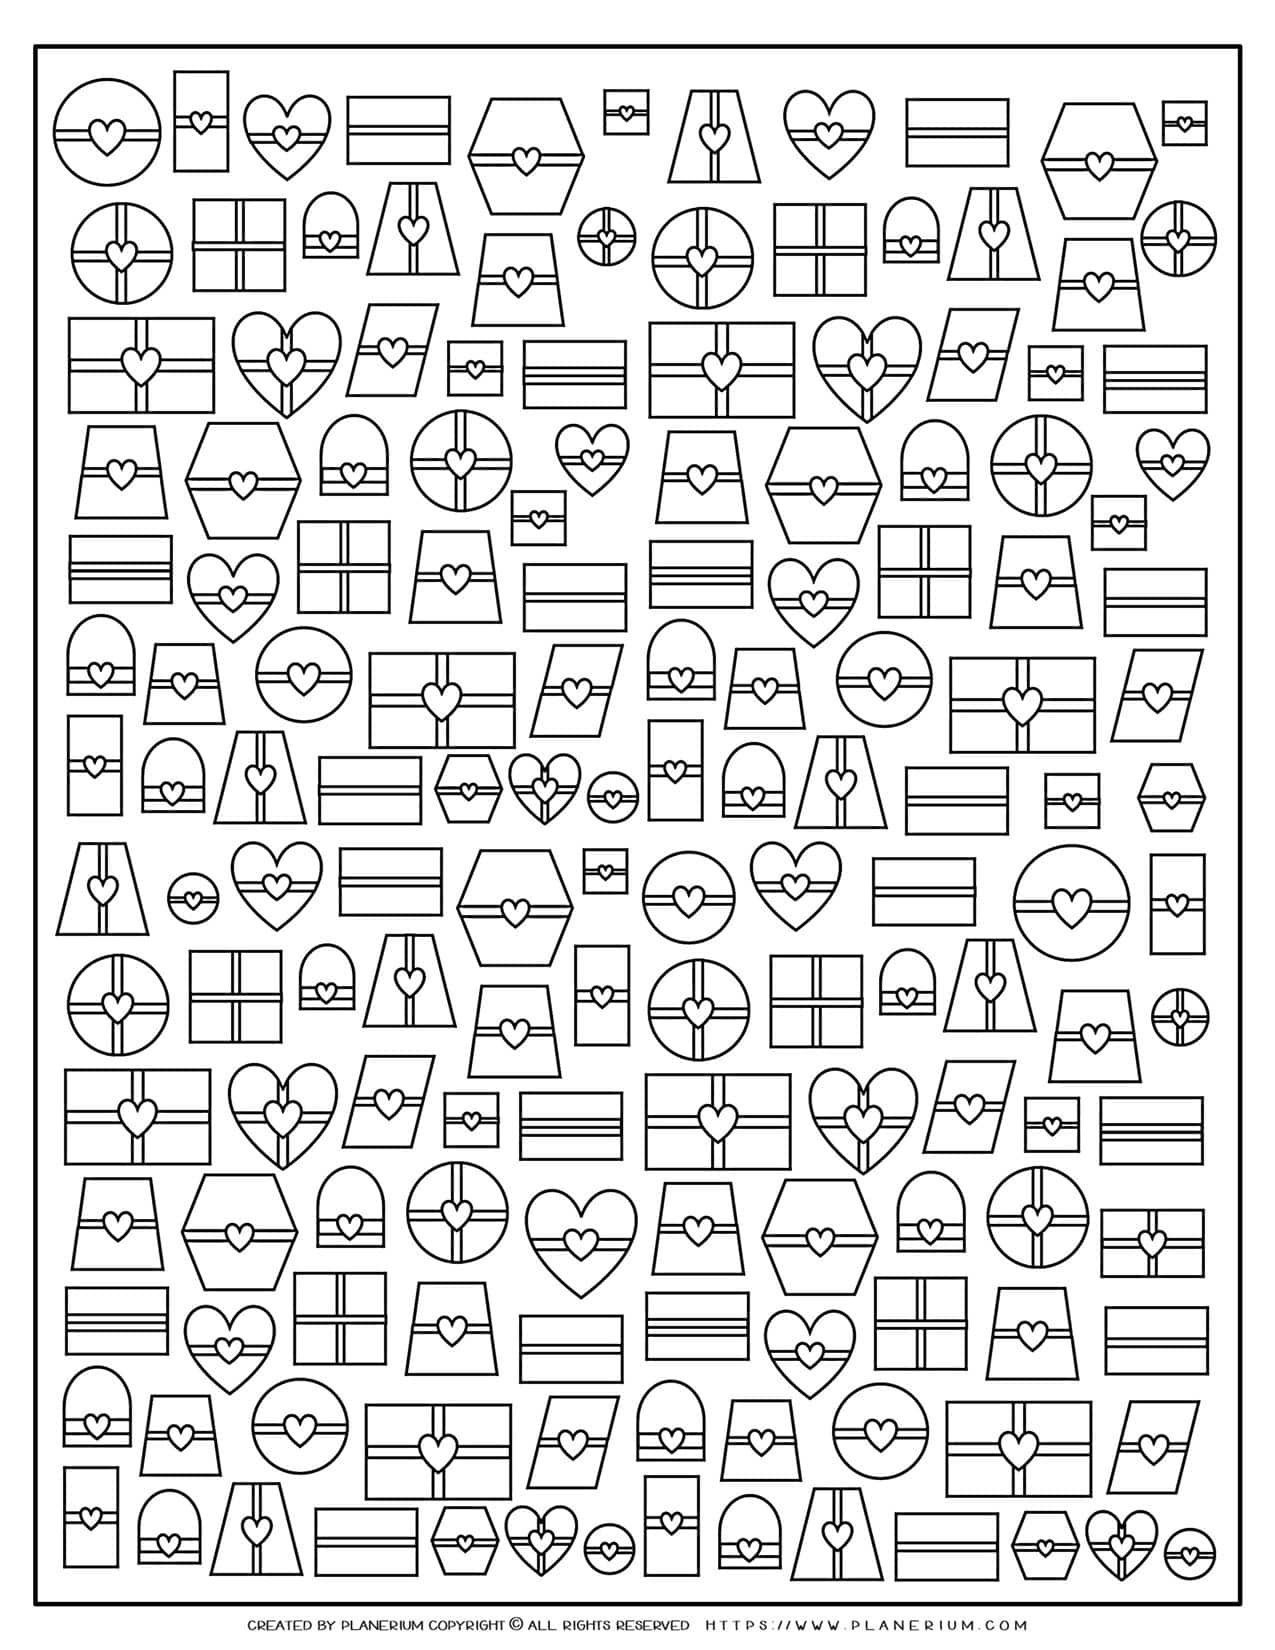 Adult Coloring Pages - Presents | Planerium